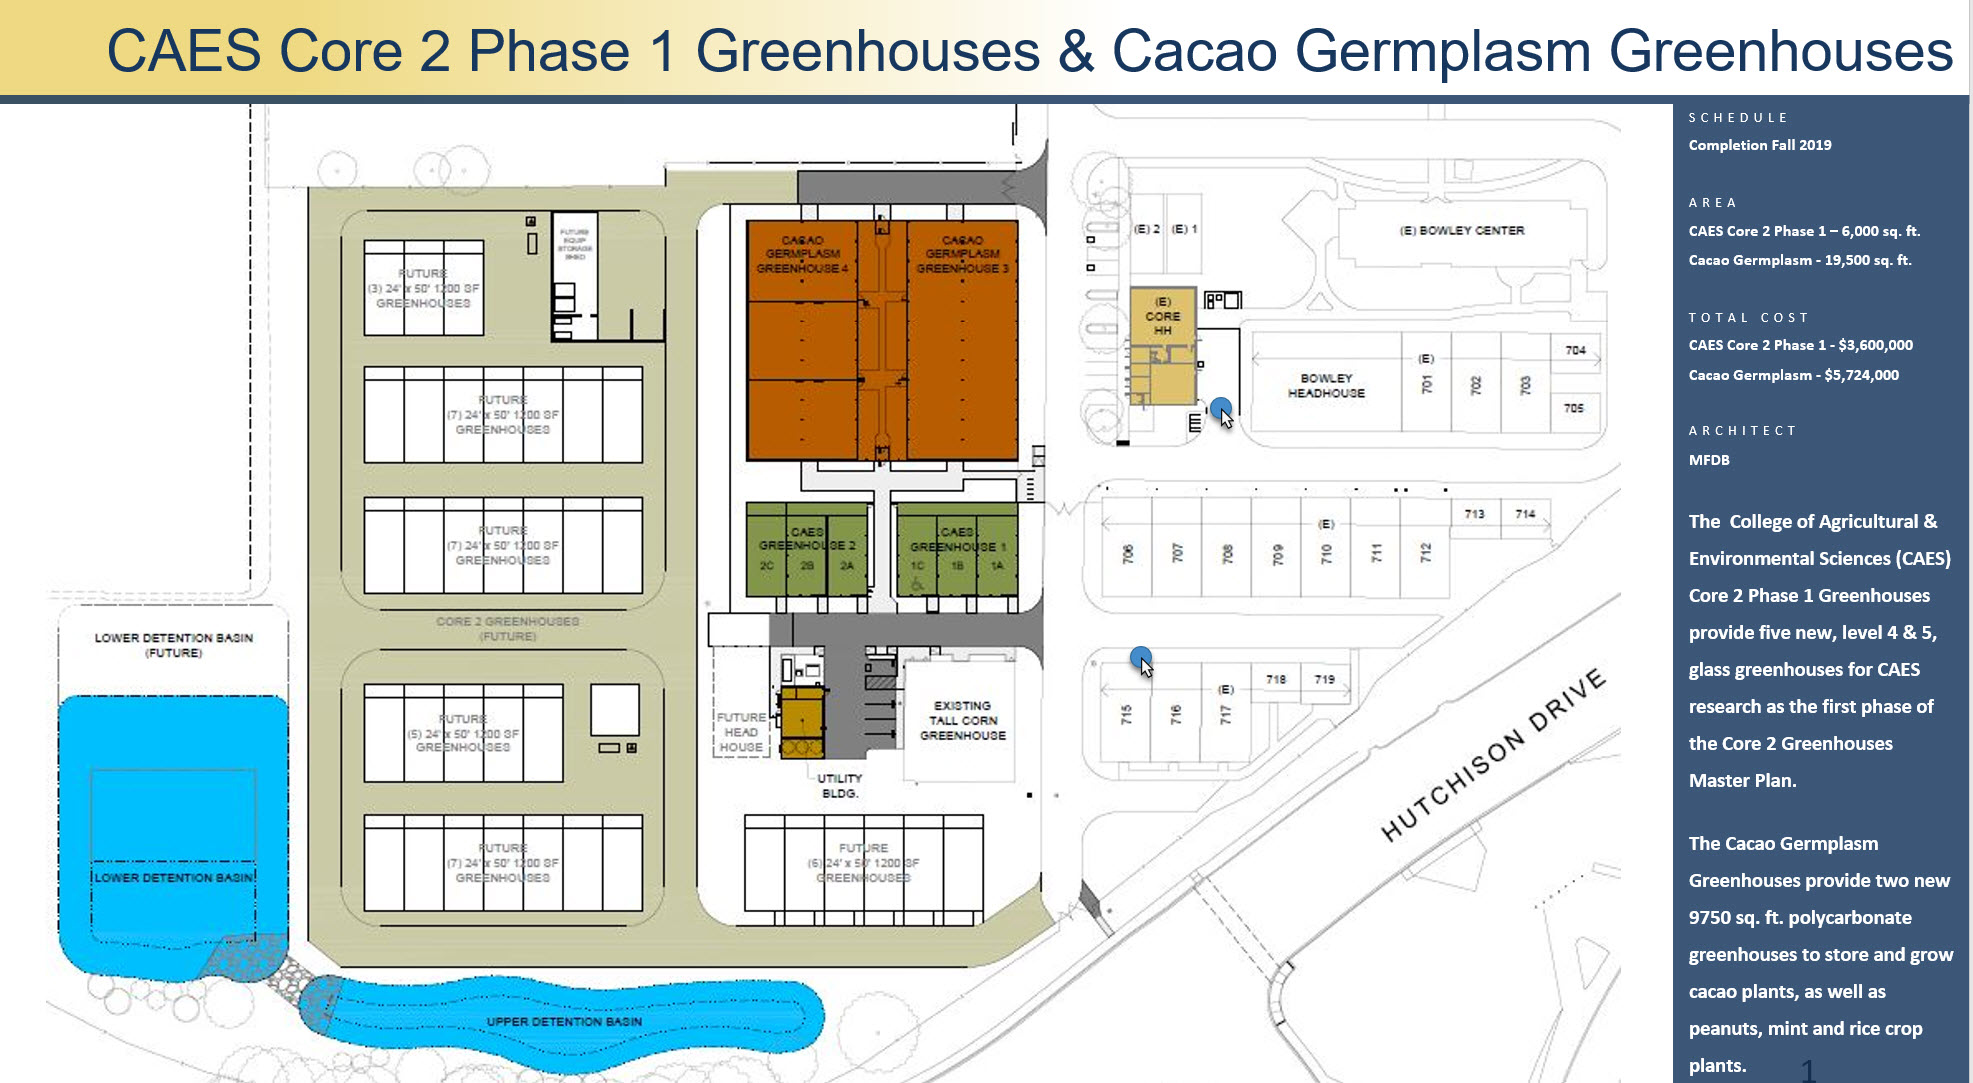 CAES Core 2 Phase 1